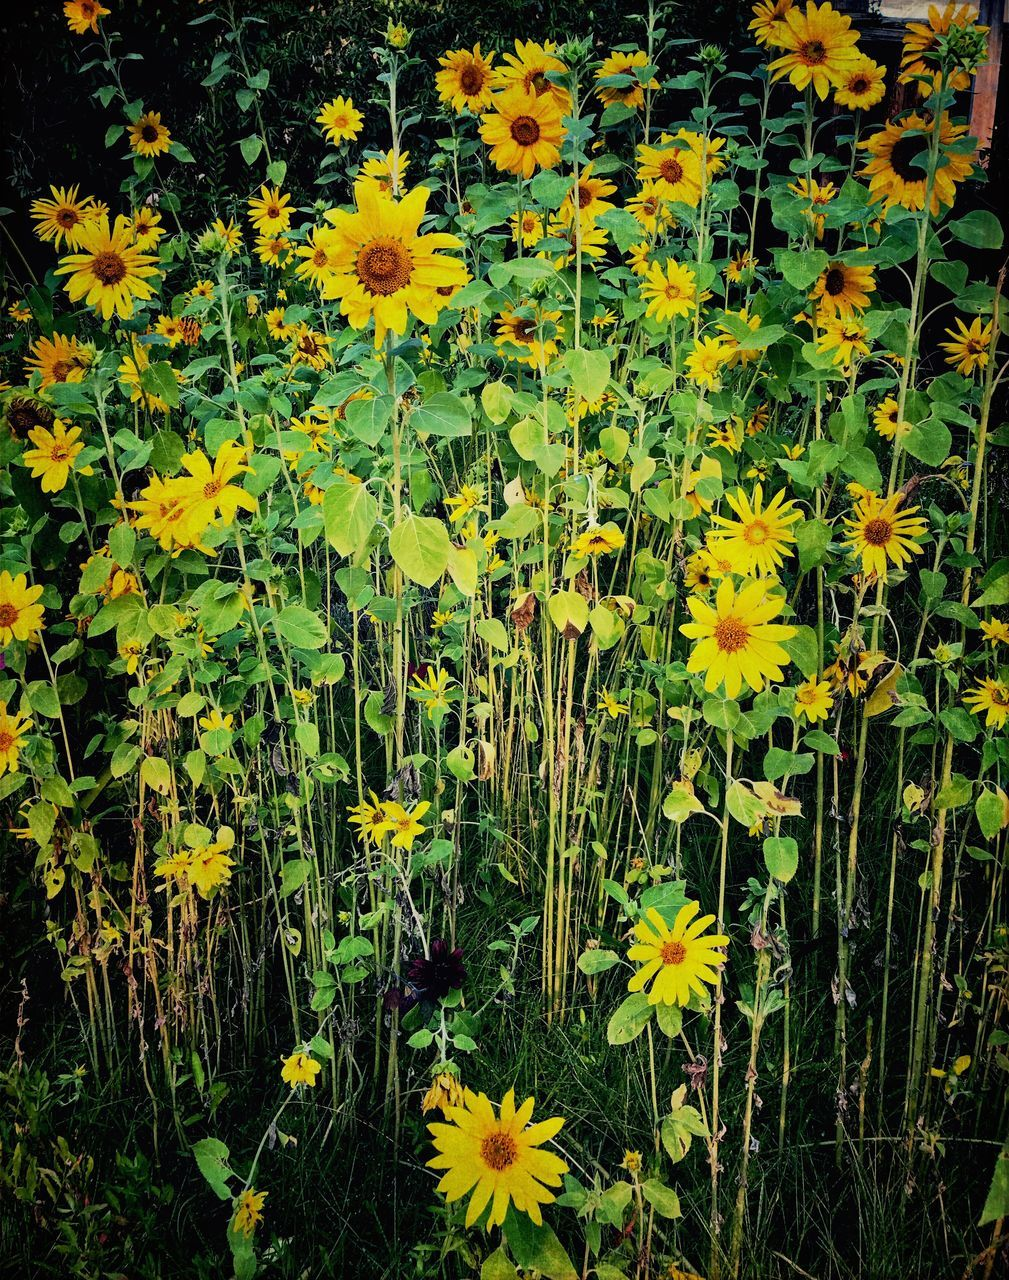 flower, growth, yellow, plant, nature, blooming, freshness, beauty in nature, fragility, spring, petal, blossoming, field, blossom, vegetation, black-eyed susan, flora, uncultivated, flower head, outdoors, no people, flowerbed, day